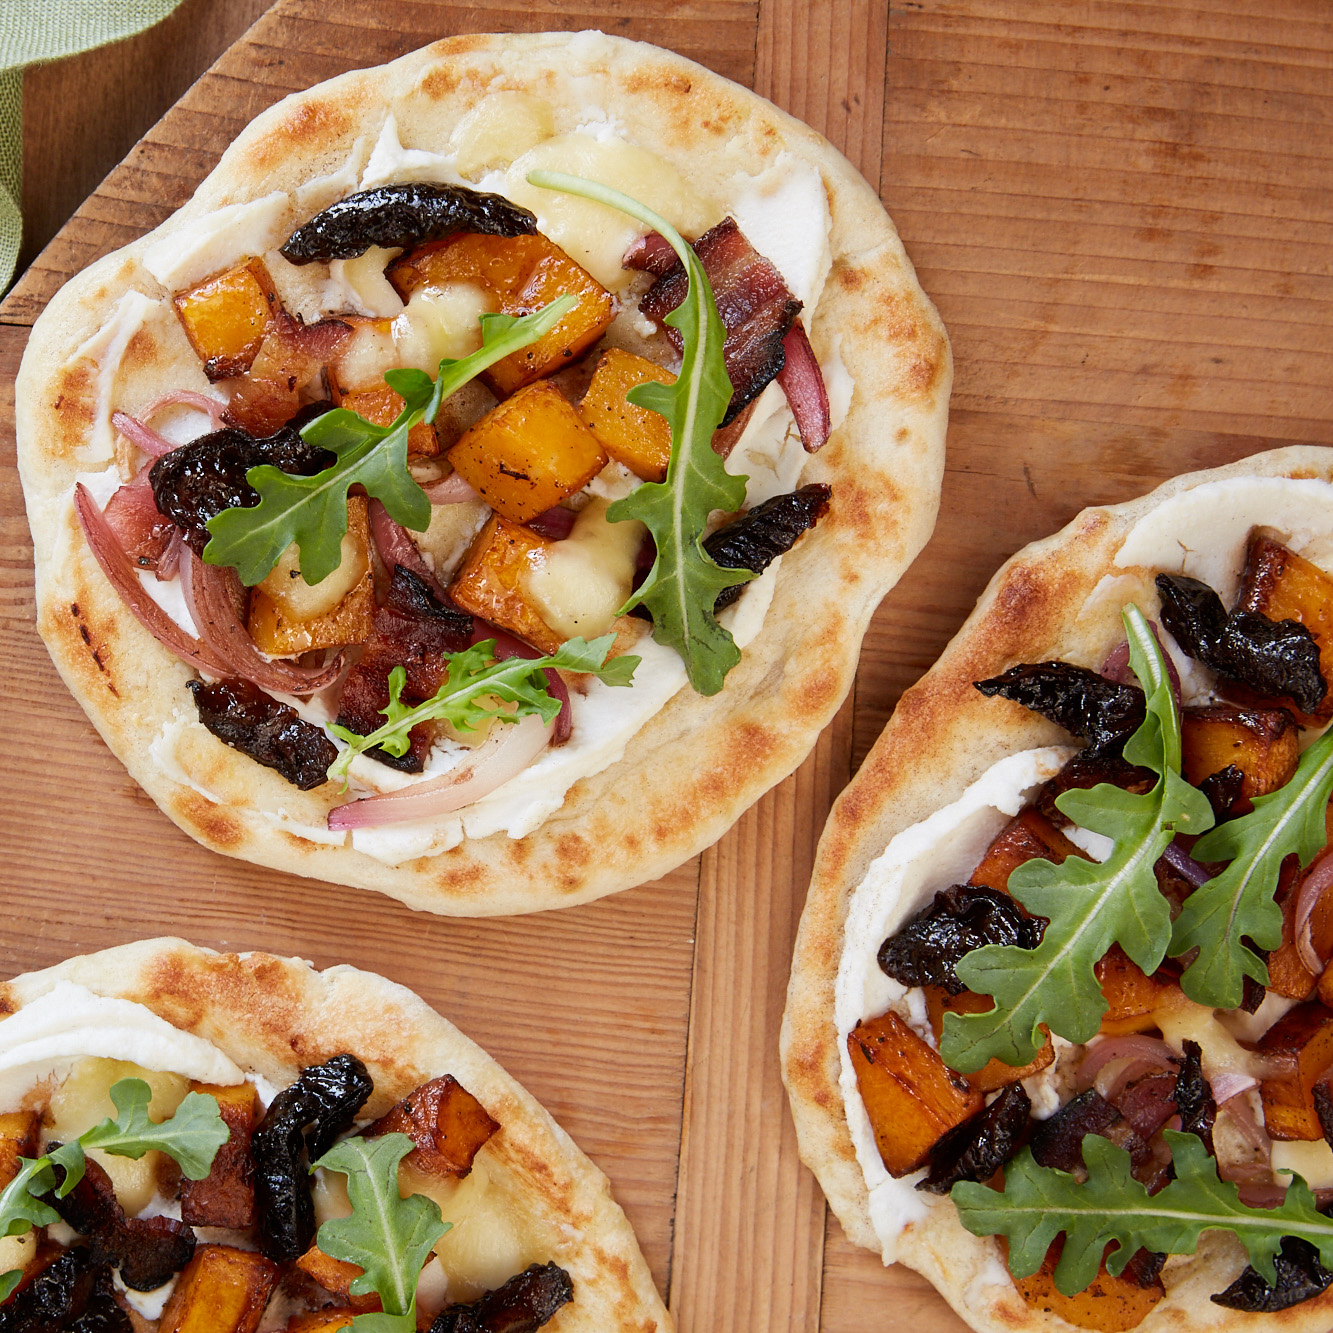 <p>Opting for roasted butternut squash, ricotta, and bacon in place of classic tomato sauce makes for memorable pizzettes—mini pizzas meant to be eaten as appetizers. Topping the pizzettes with arugula salad and diced prunes gives this cold-weather flatbread a bright finish.</p>